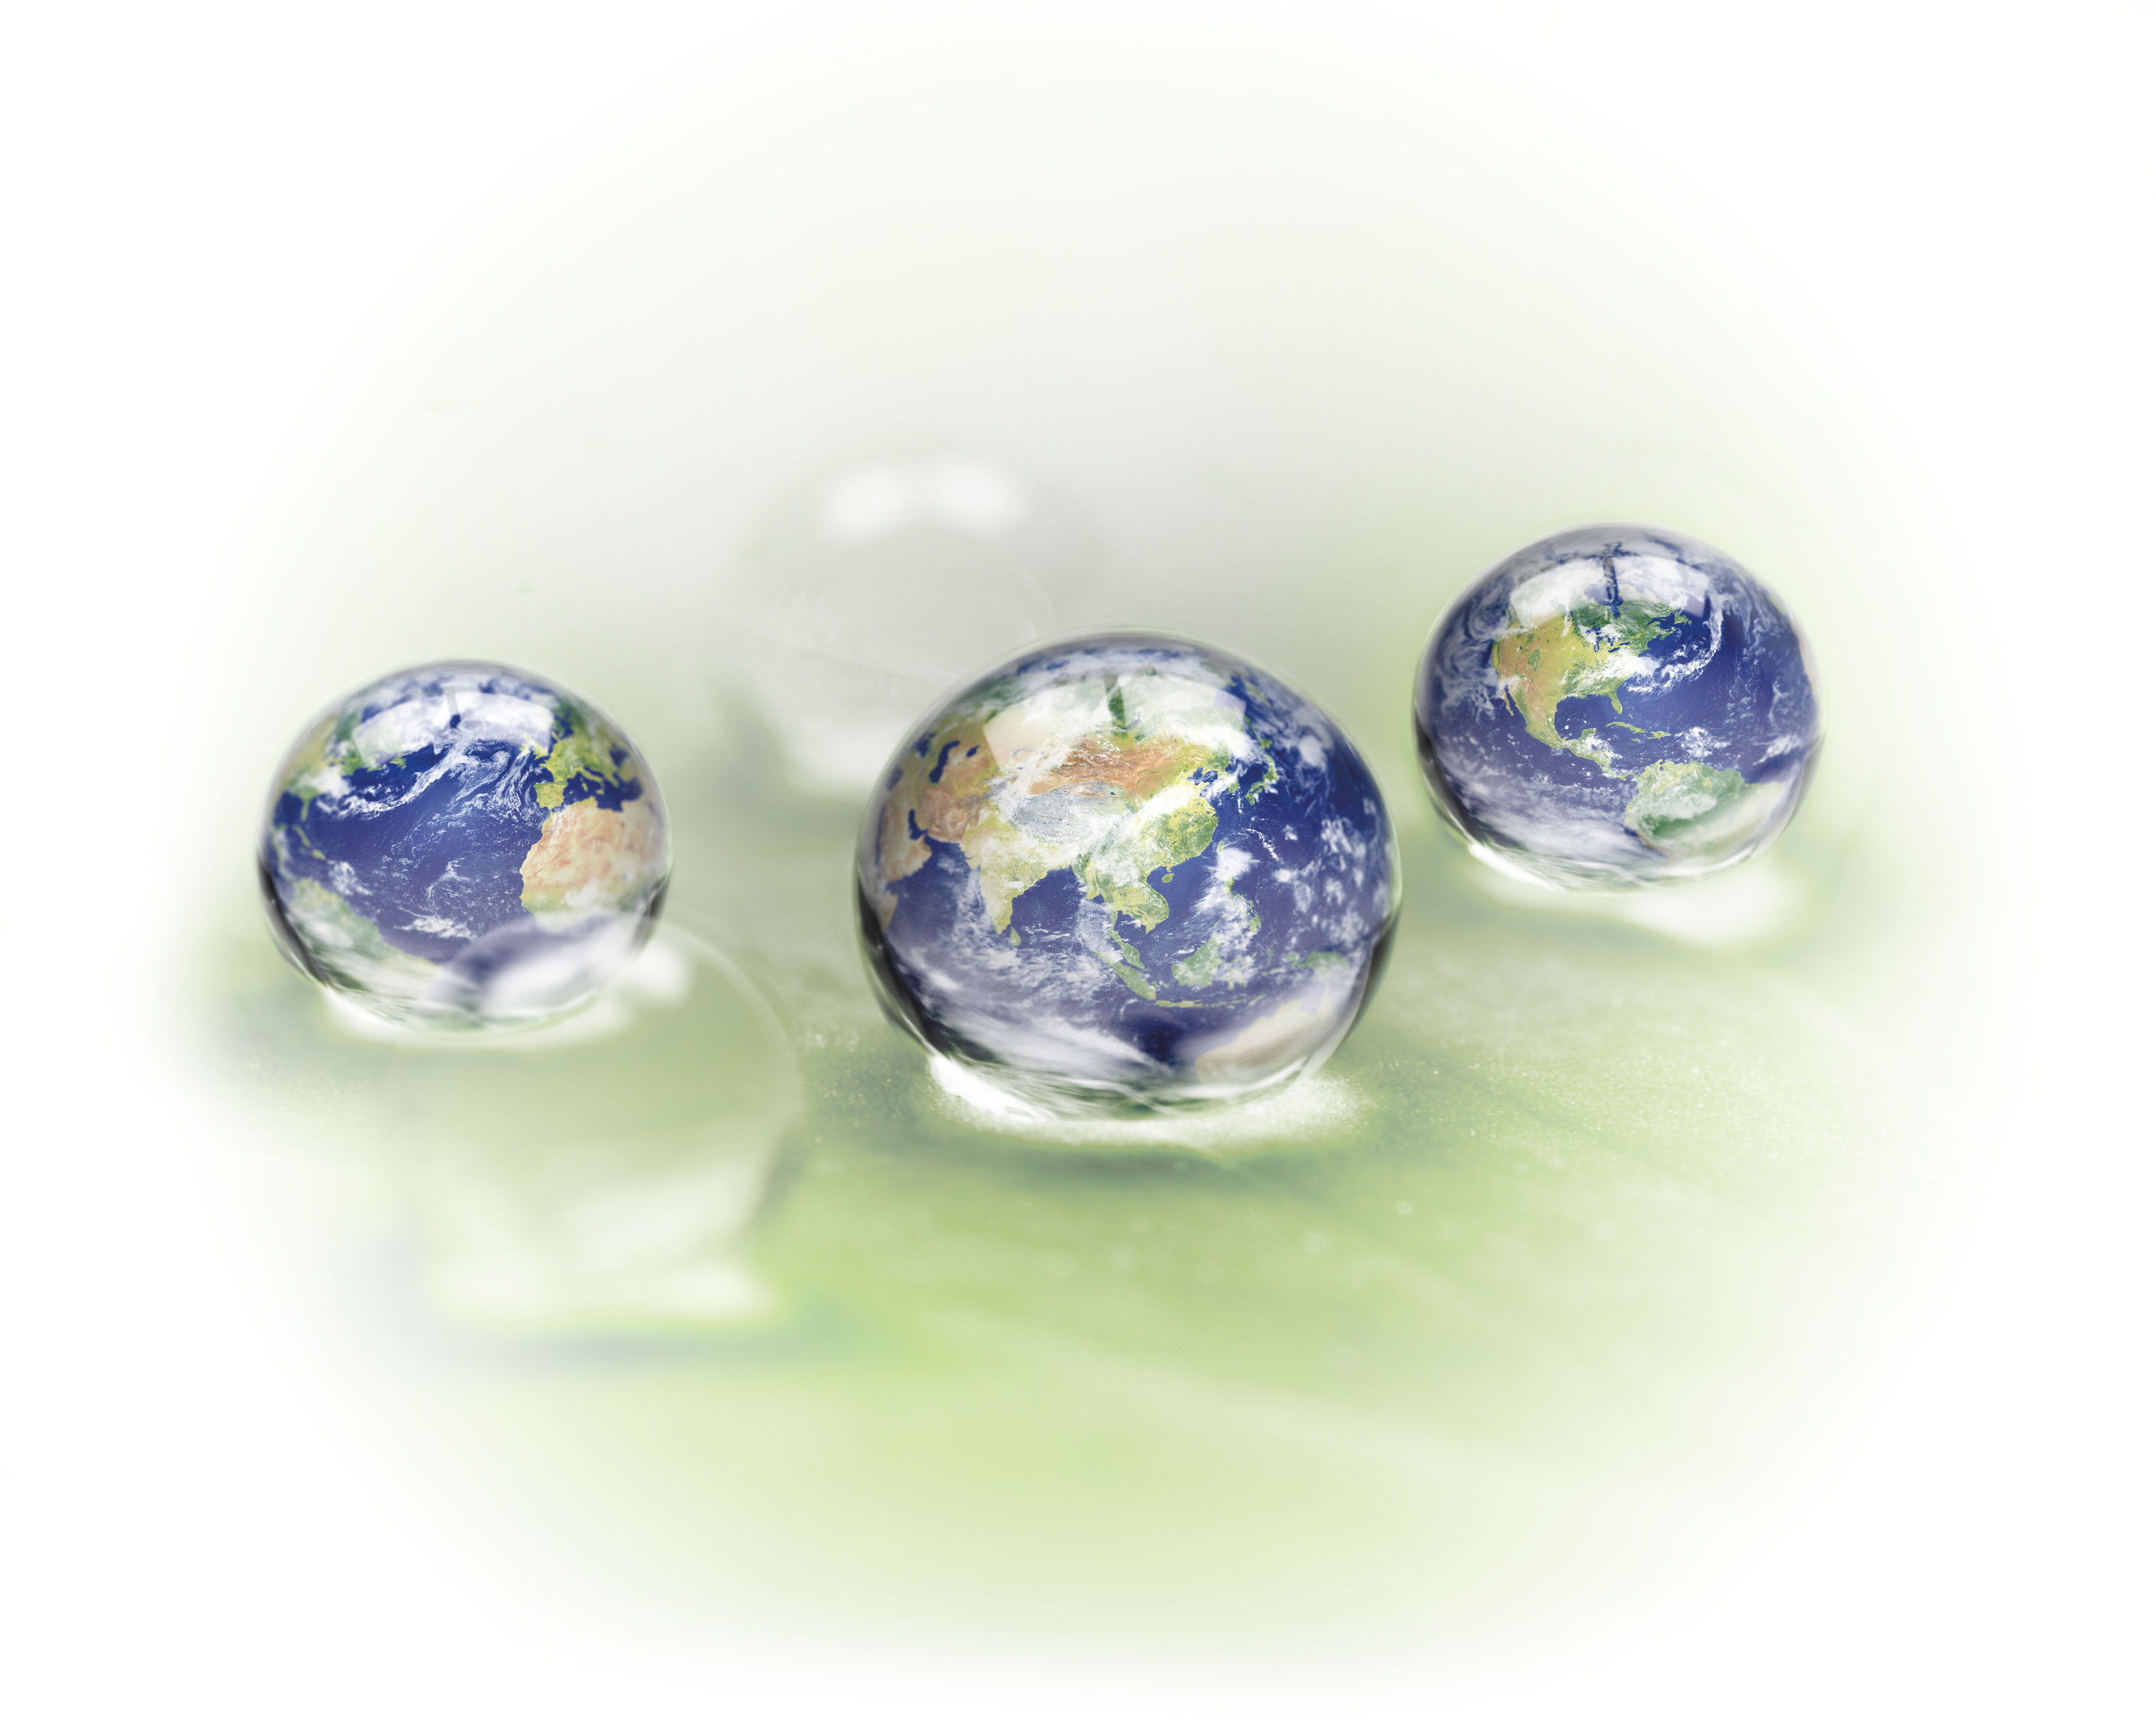 Image of water droplets on a leaf with globes in them